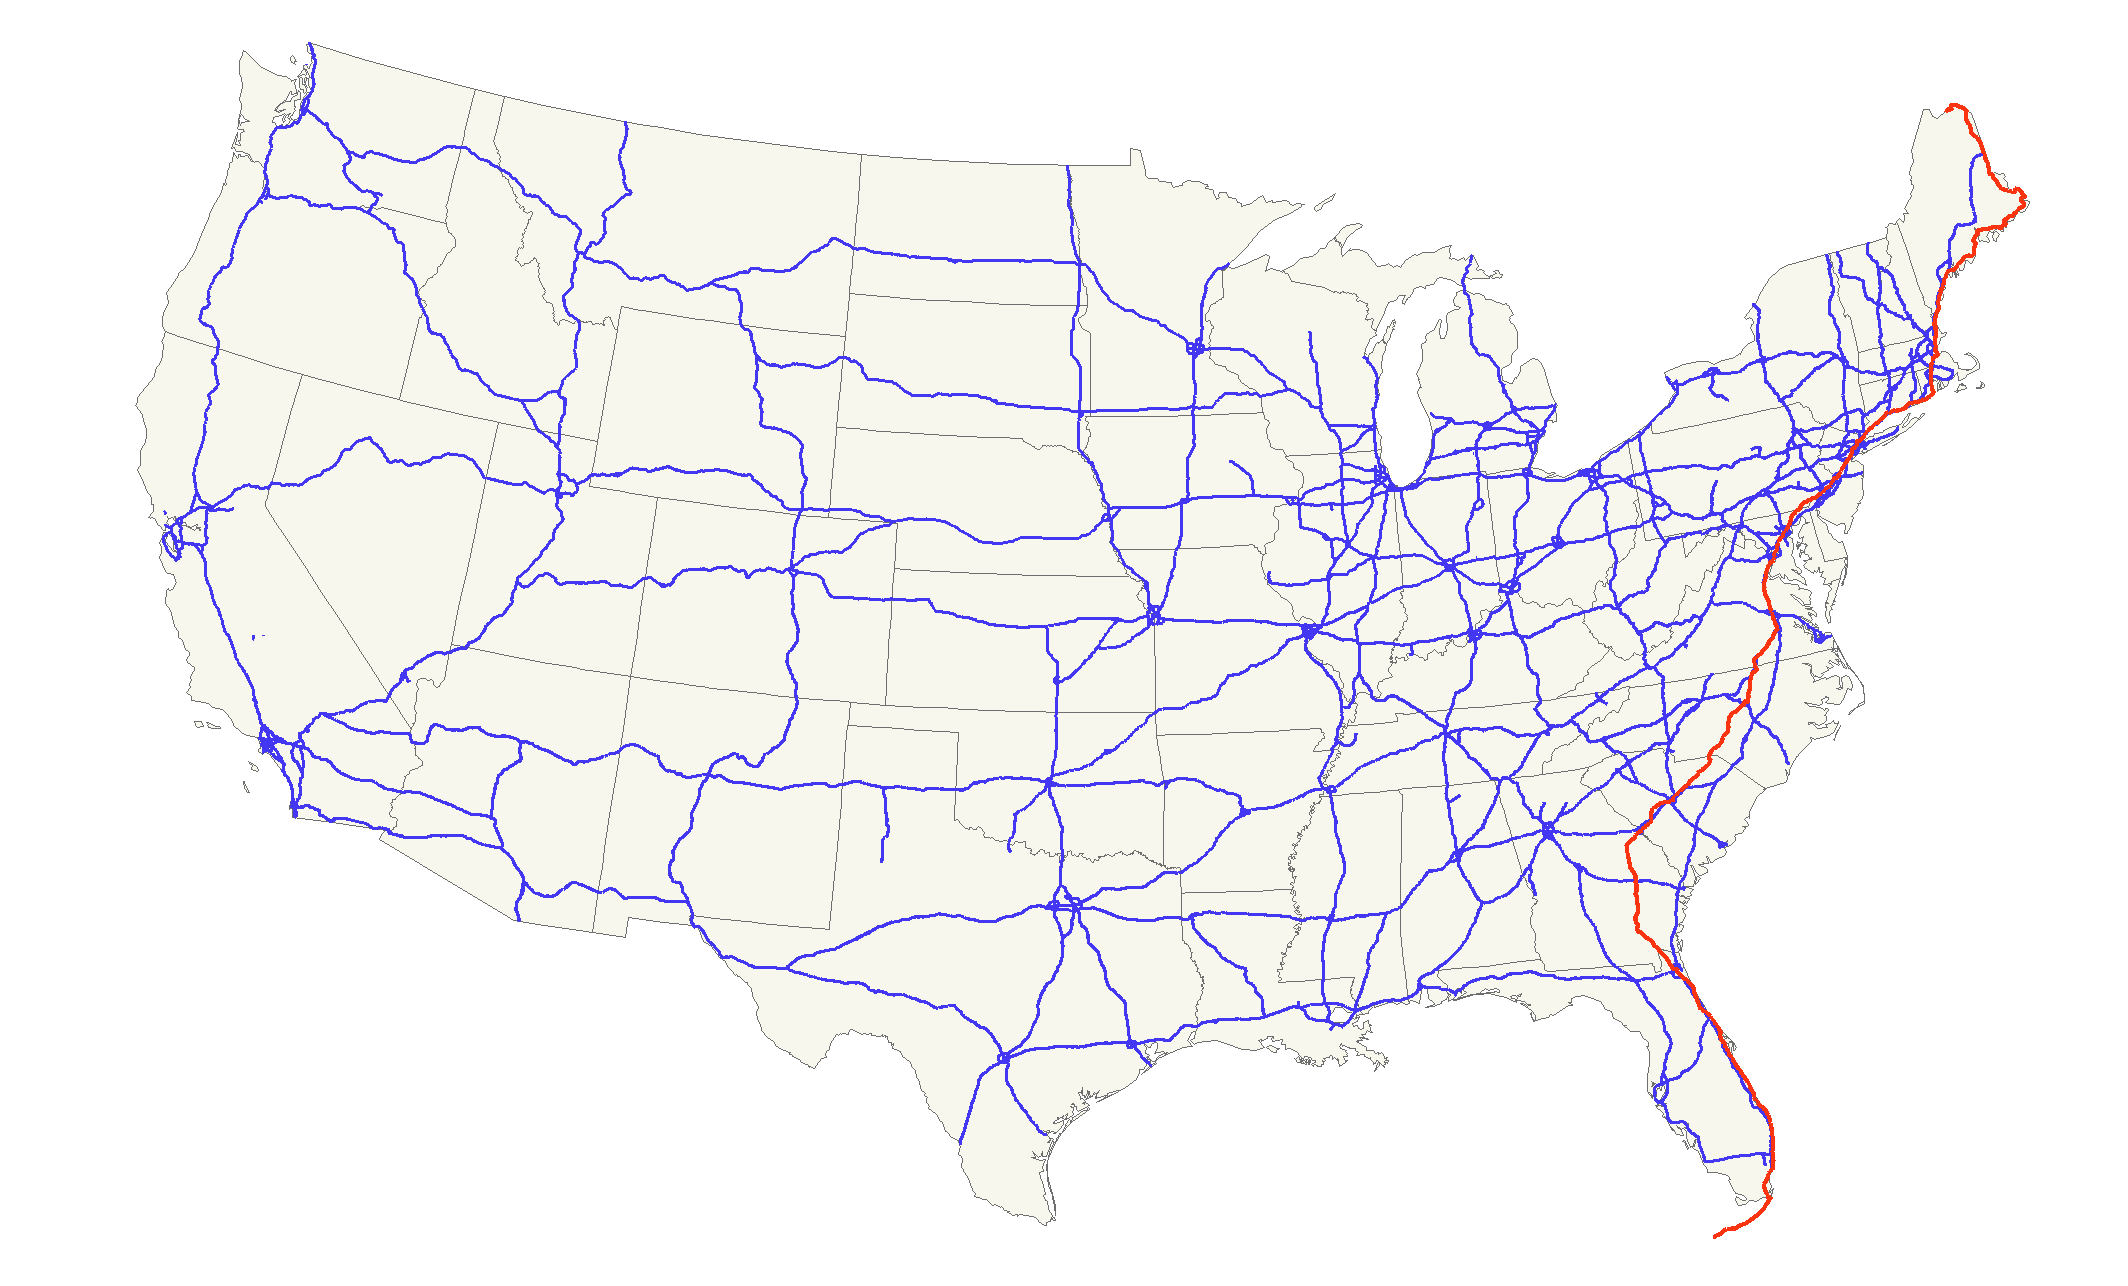 U.S. Route 1 - Wikipedia on highway map of yukon, highway map of eastern oregon, highway map of greece, highway map of turkey, highway map of dominican republic, highway map of eastern states, highway map of south alabama, highway map of texas, highway map of cuba, highway map of southwest, highway map of tampa, highway map of nashville, highway map of northern new jersey, highway map of northern michigan, highway map of seattle area, highway map of southern michigan, highway map of north florida, highway map of central oregon, golf of new mexico, highway map of detroit,